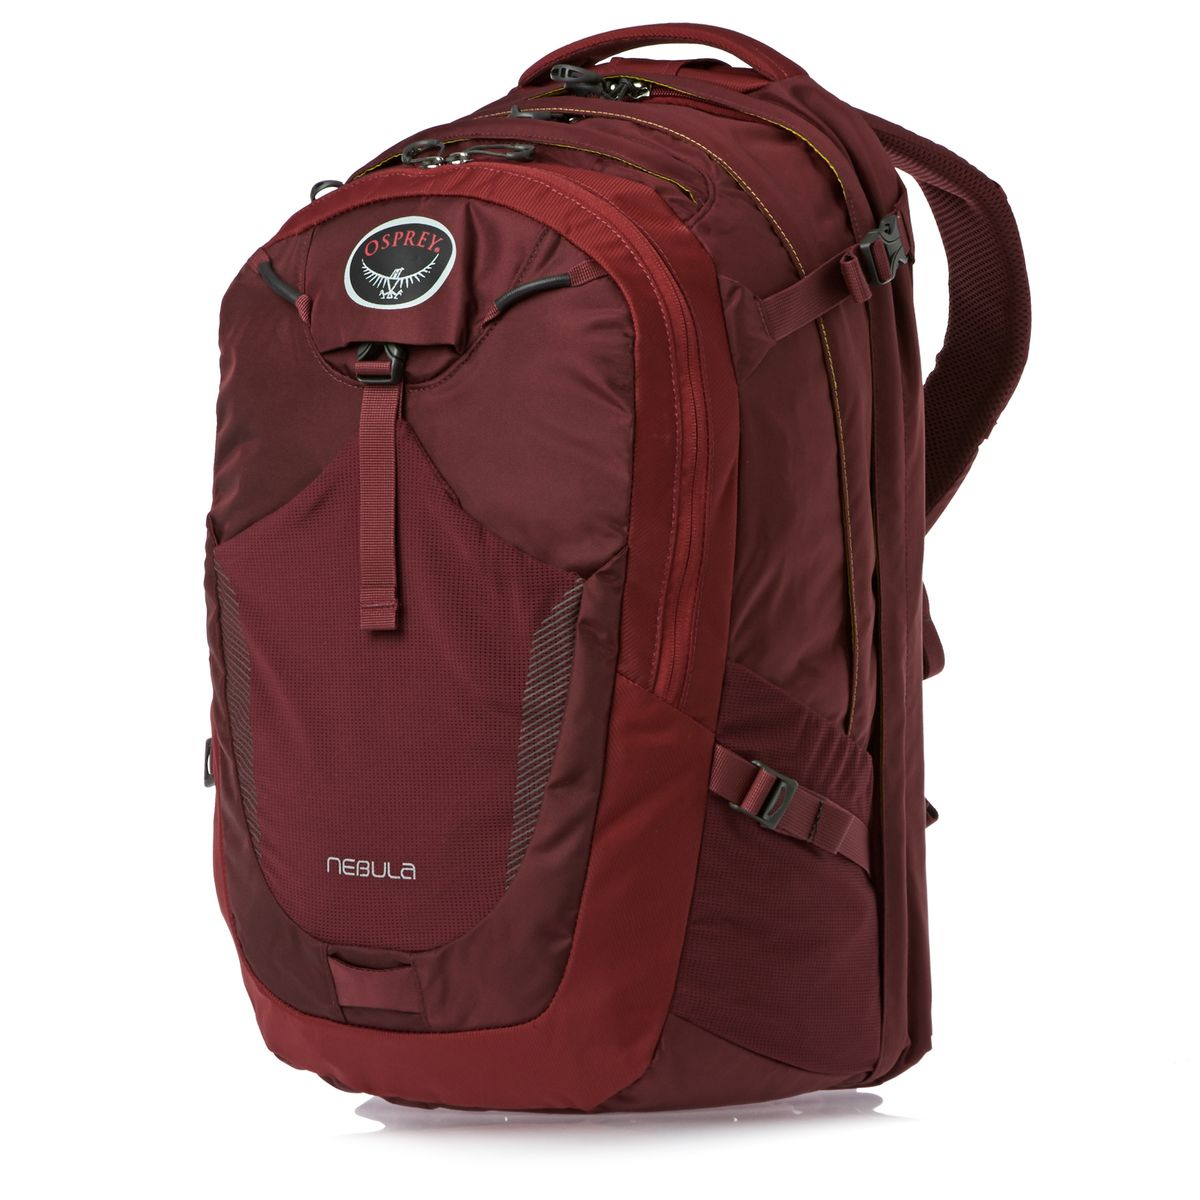 osprey-backpacks-osprey-nebula-34-backpack-brick-red